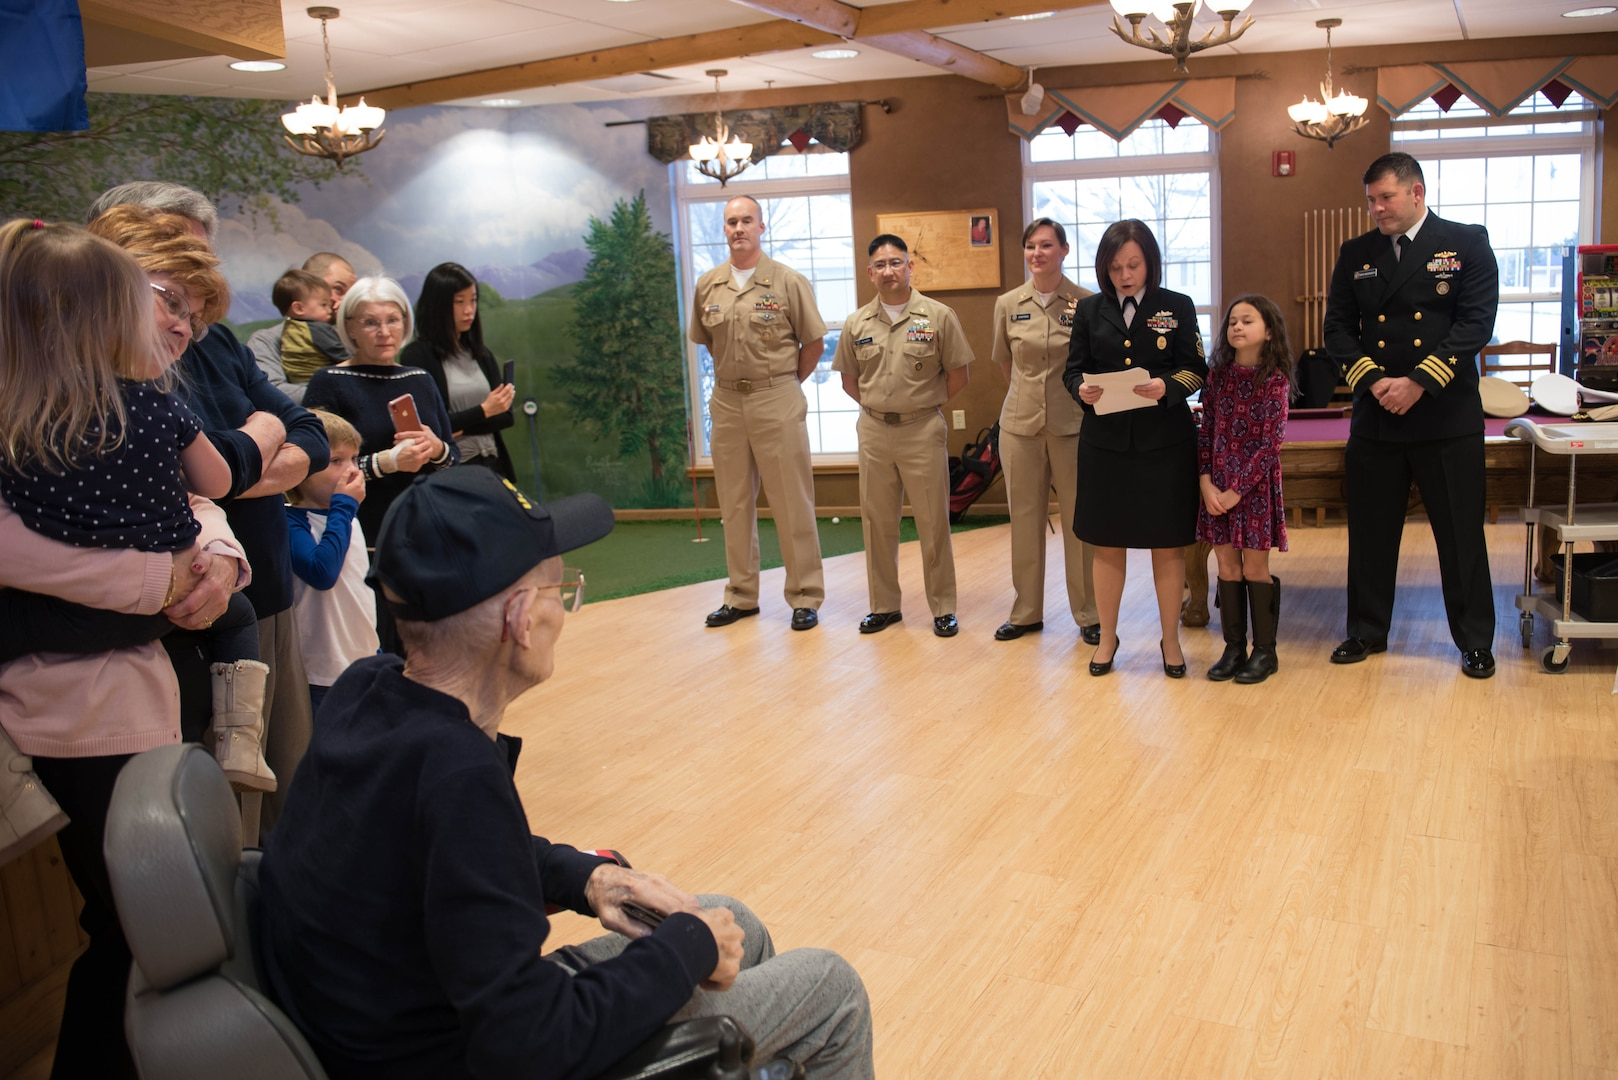 Senior Chief Petty Officer Lisa Vrtiska, U.S. Strategic Command Navy Element senior enlisted leader, thanks Navy veteran Chief Petty Officer Leonard Kulceski for his service during at a veteran recognition ceremony at Hillcrest Mable Rose in Papillion, Nebraska, Jan. 18, 2019. During the ceremony, Kulceski was presented a certificate, pin, blanket and a salute from chief petty officers to honor his service to his country. (U.S. Air Force photo by Zachary Hada)